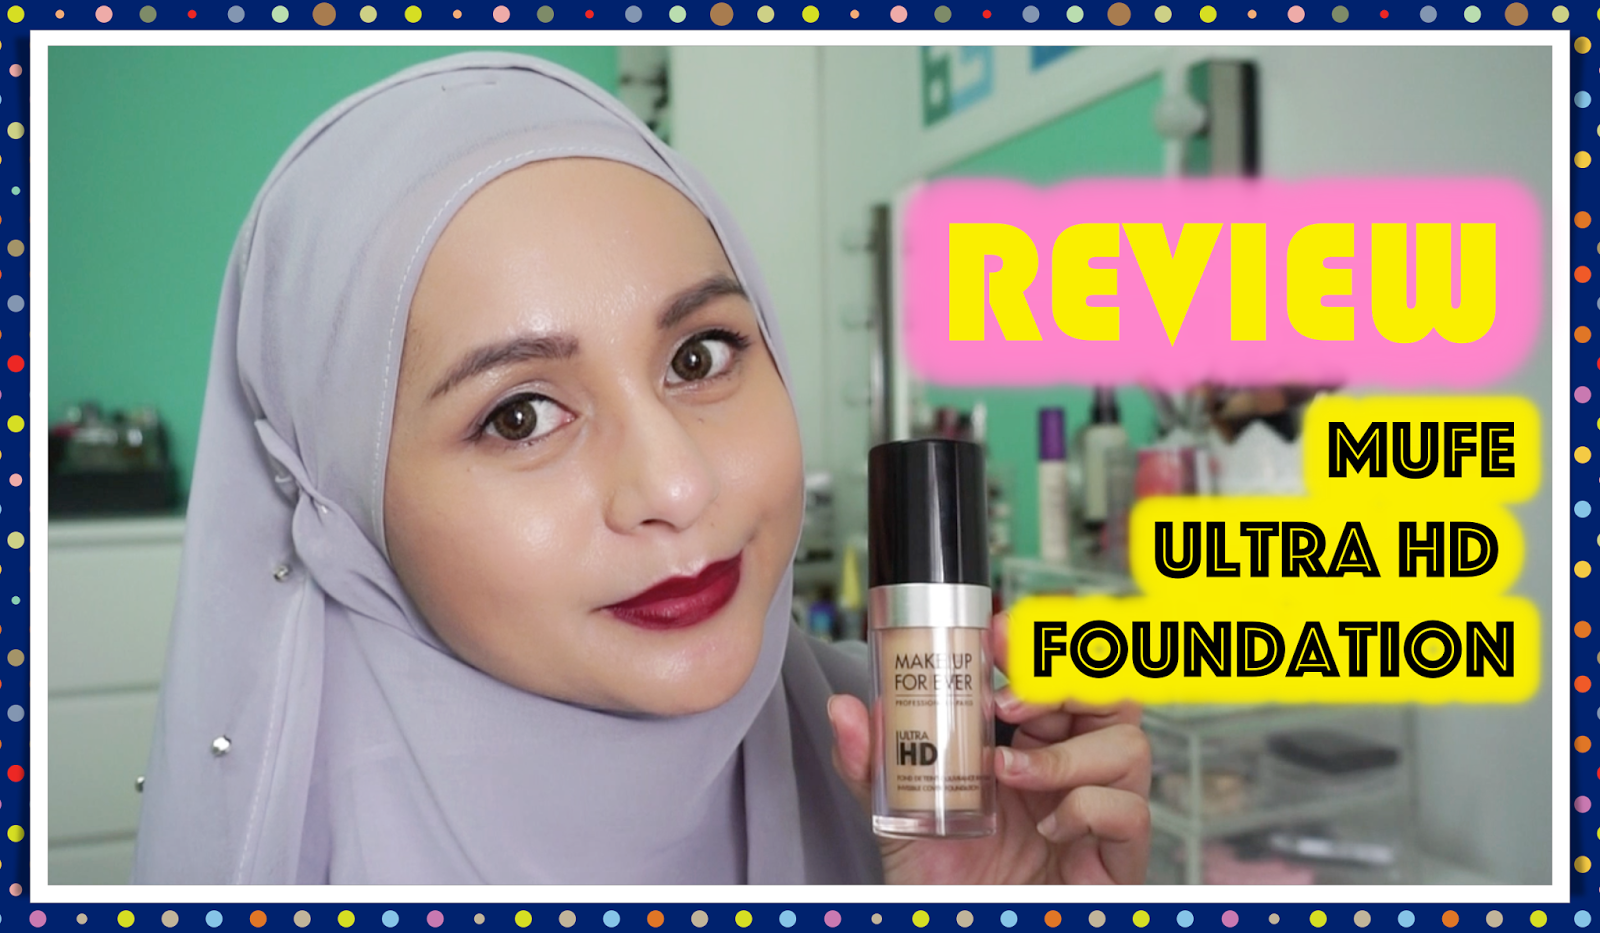 Beauty review make up for ever ultra hd foundation sabby beauty review make up for ever ultra hd foundation baditri Image collections